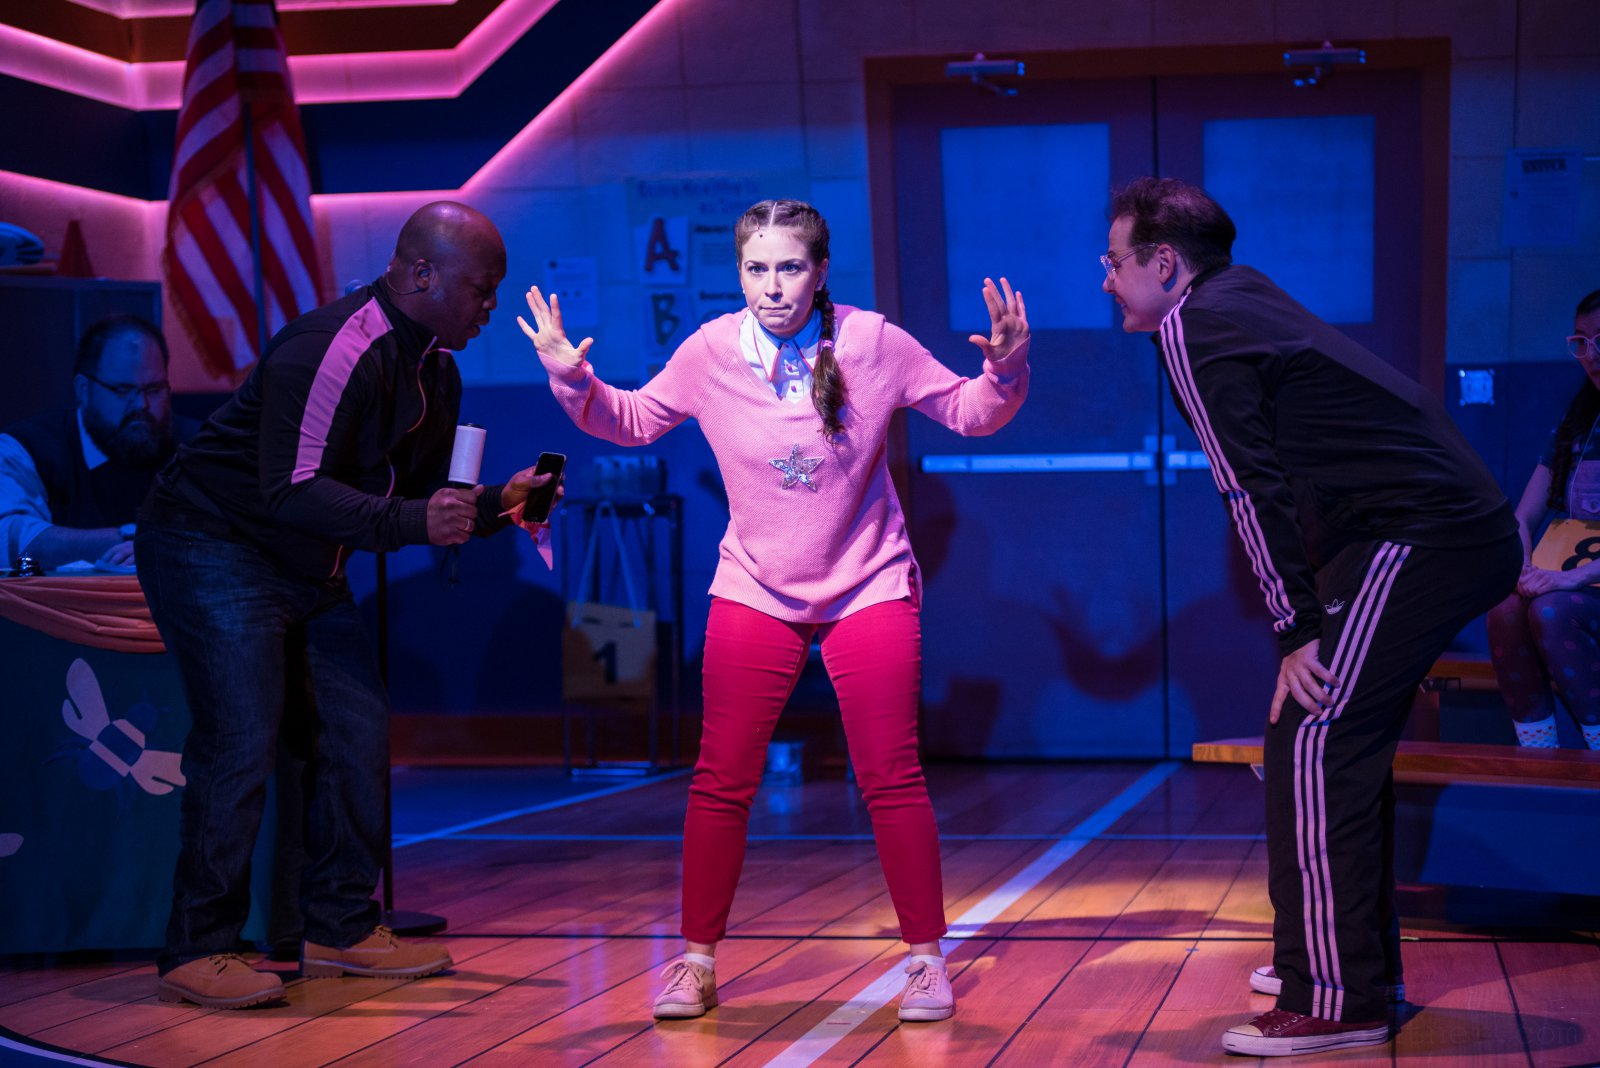 Kaylee Annable (Logainne SchwartzandGrubenierre, center) and cast members of Skylight Music Theatre's production of The 25th Annual Putnam County Spelling Bee running February 7 – February 23, 2020.